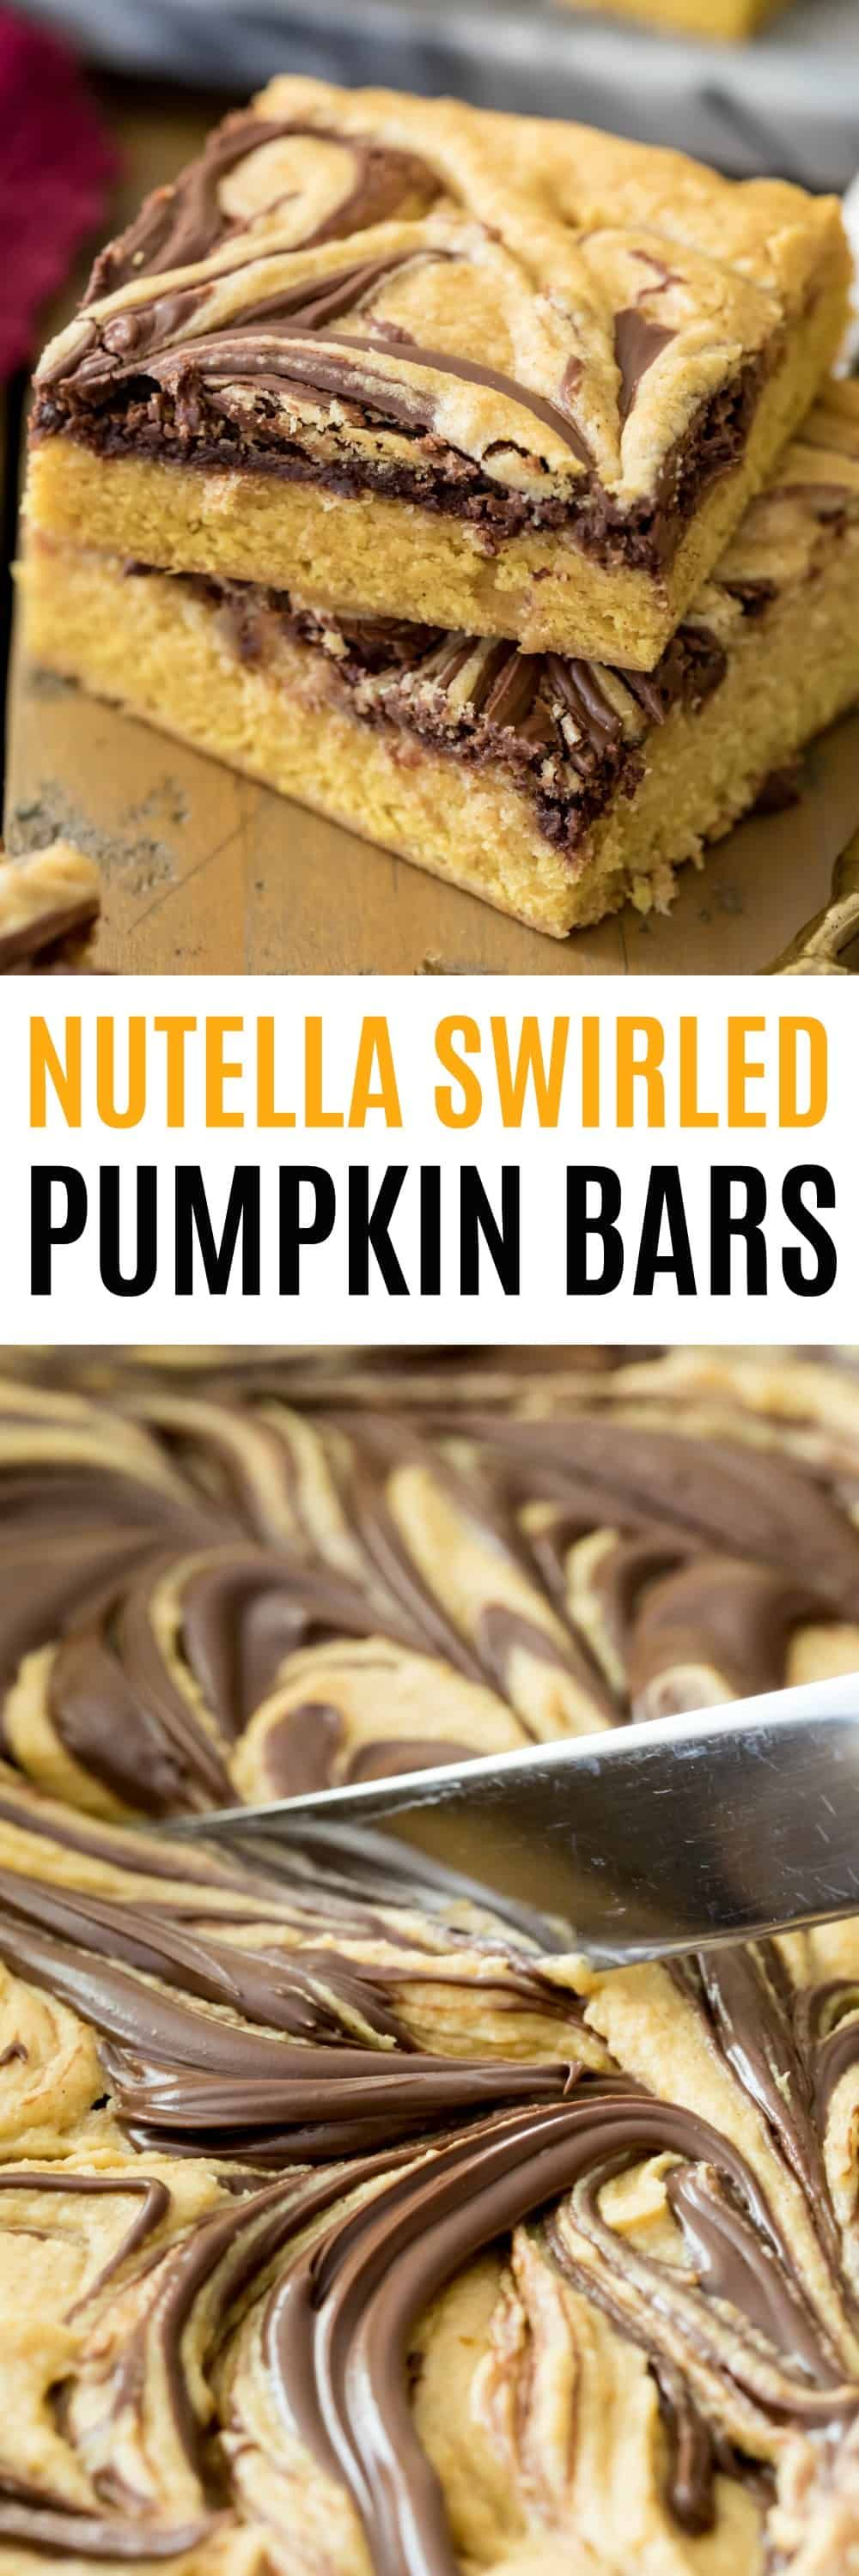 Nutella Swirled Pumpkin Bars are a perfect Fall treat! They're soft and chewy with irresistible pumpkin spice flavors and a ribbon of Nutella!